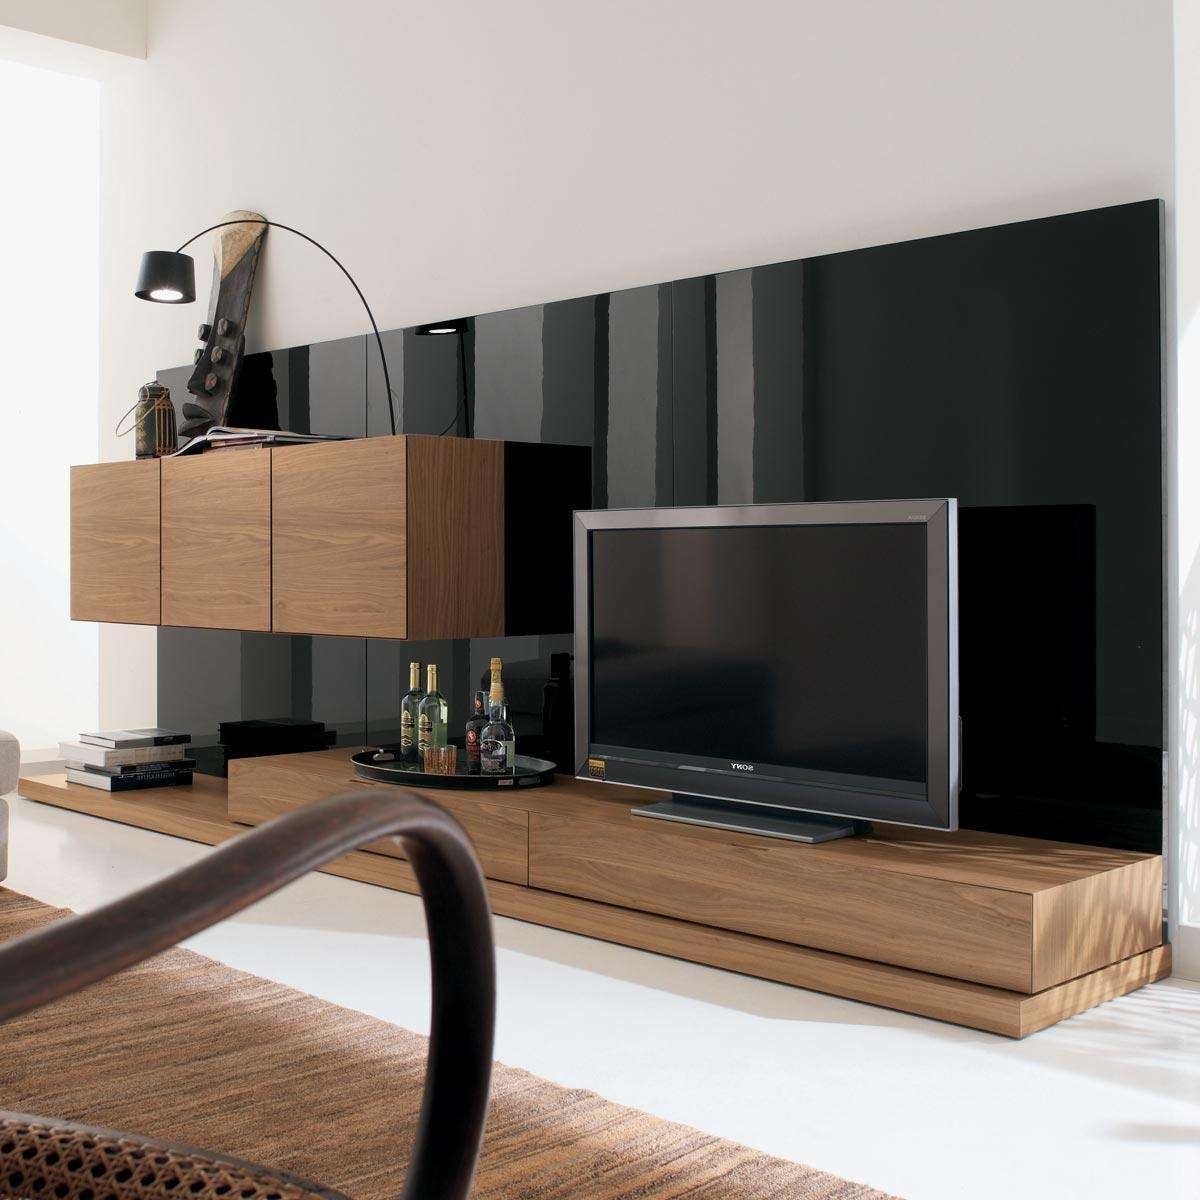 Modern Nature Wood Big Screen Tv Stand Wall Mounted Living Room Regarding Modern Style Tv Stands (View 6 of 15)